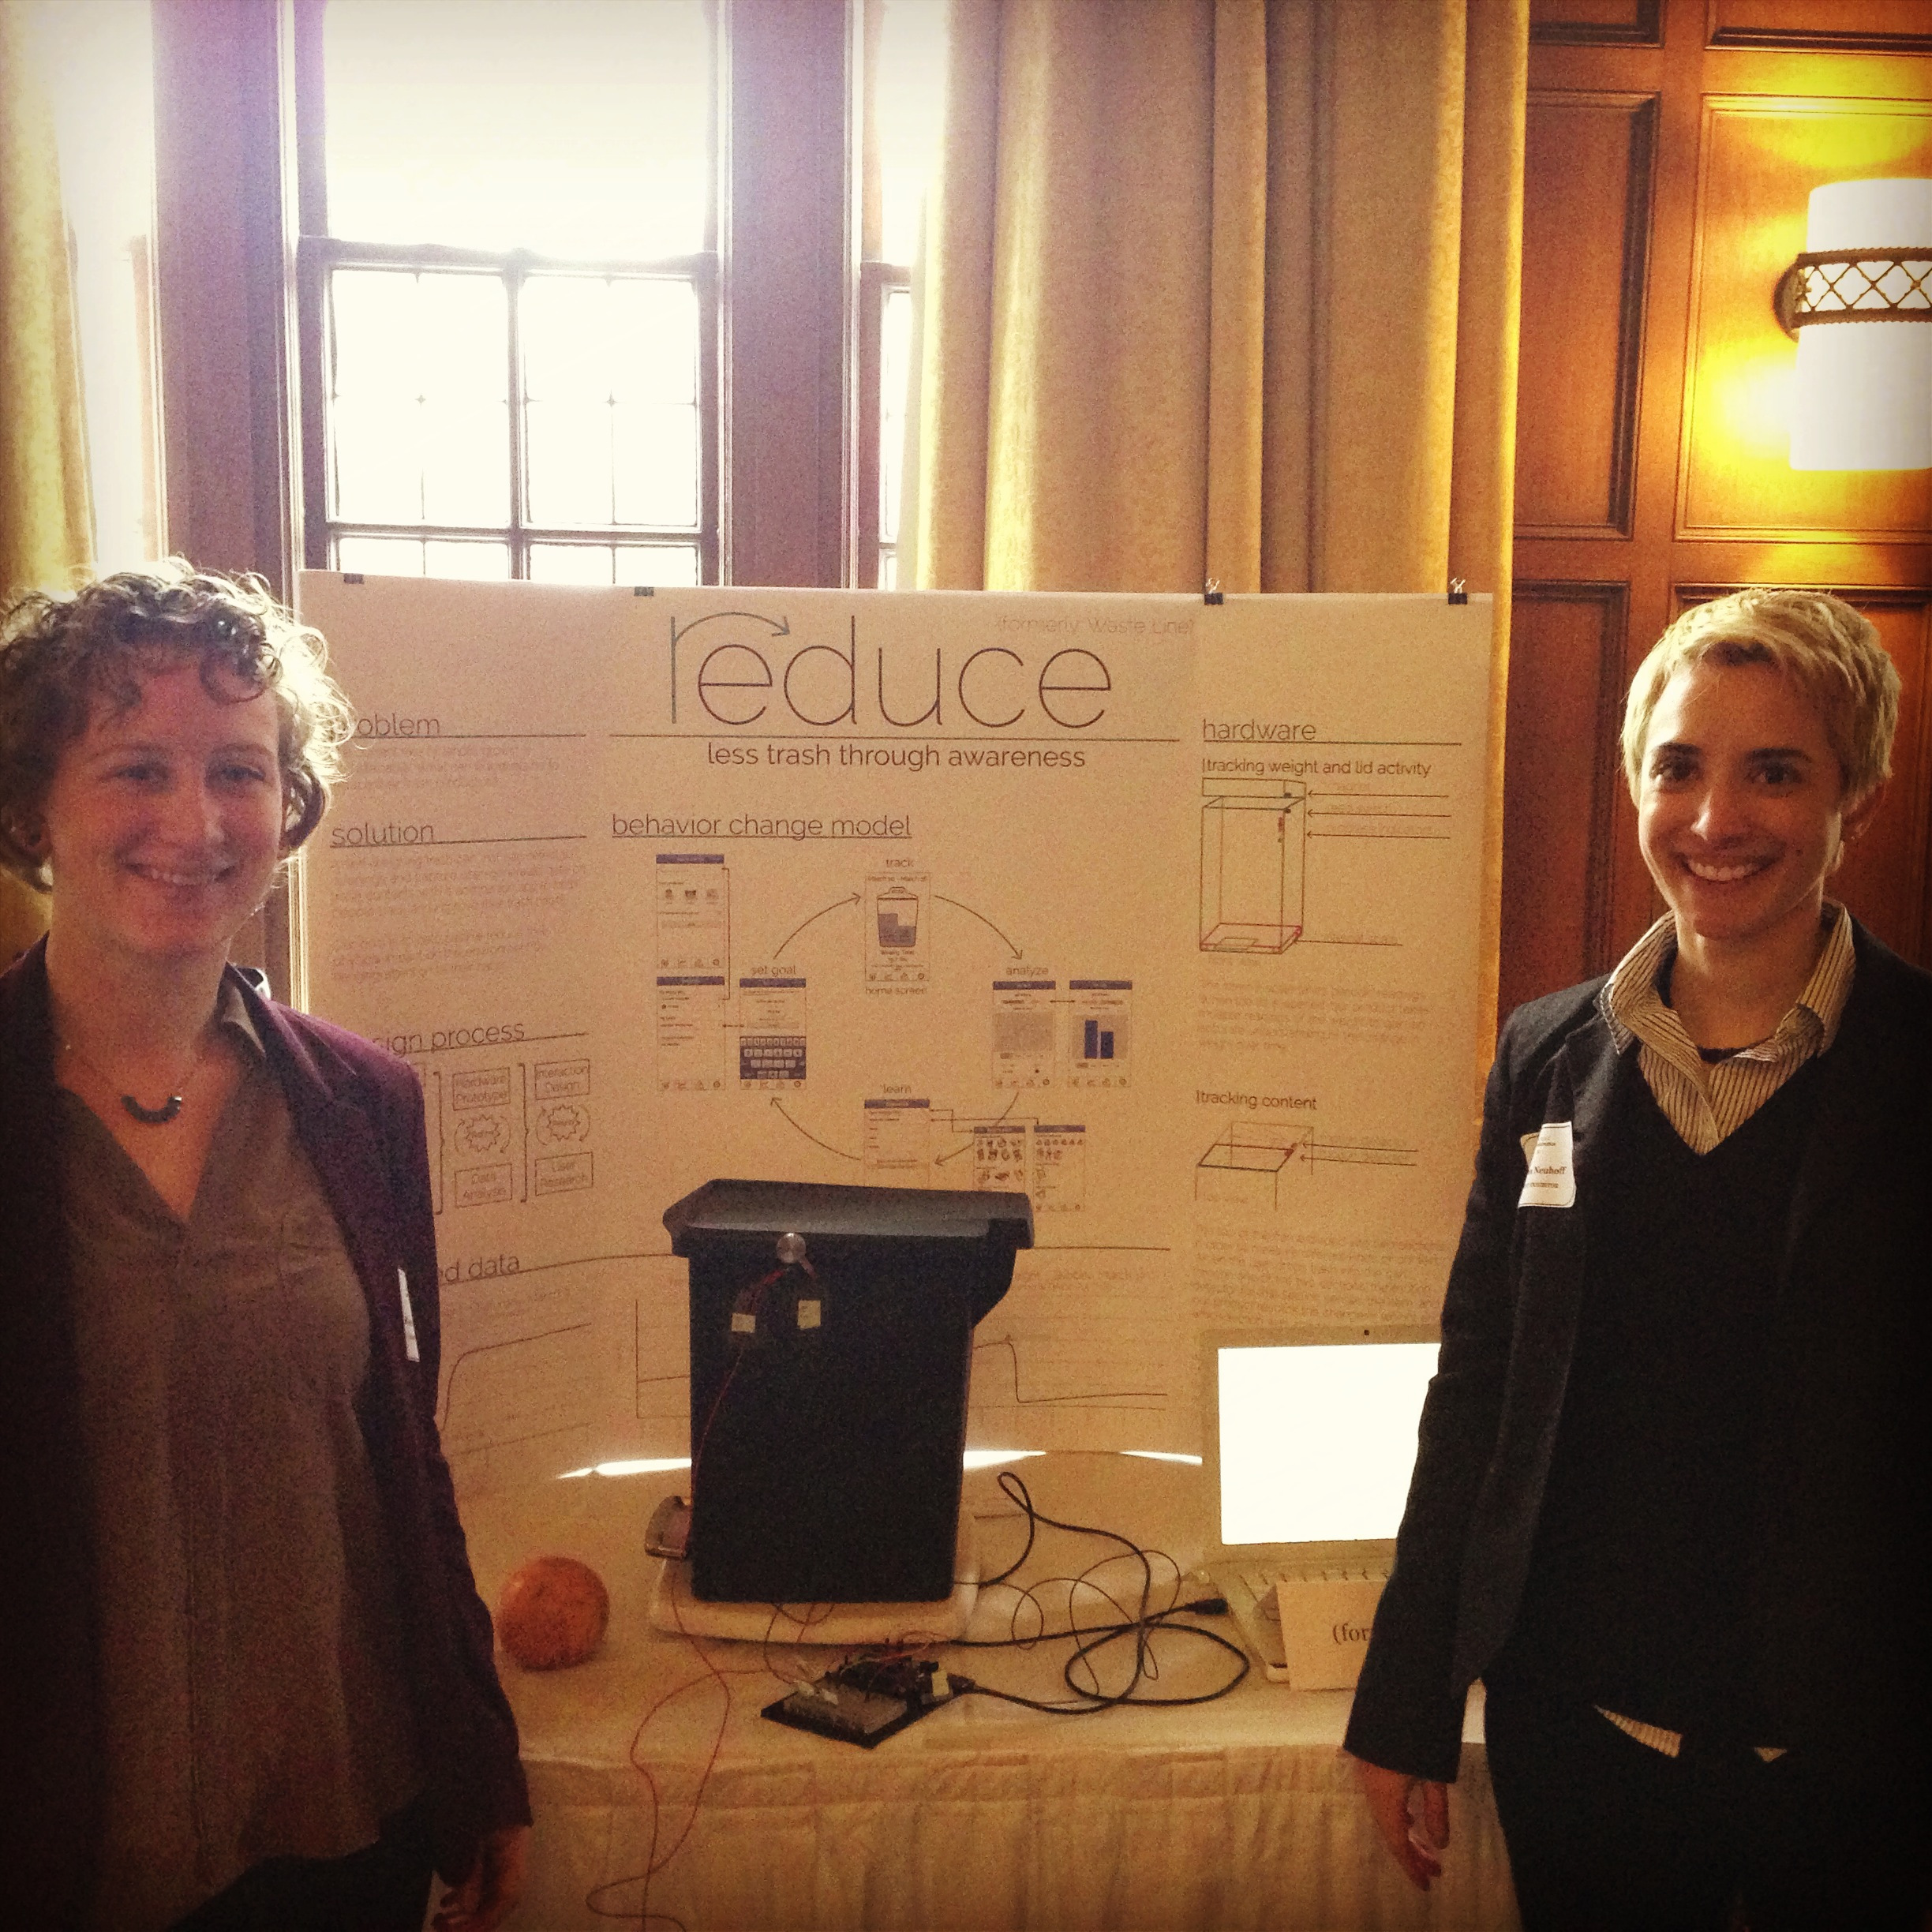 One of my teammates and I presenting our poster with hardware prototype